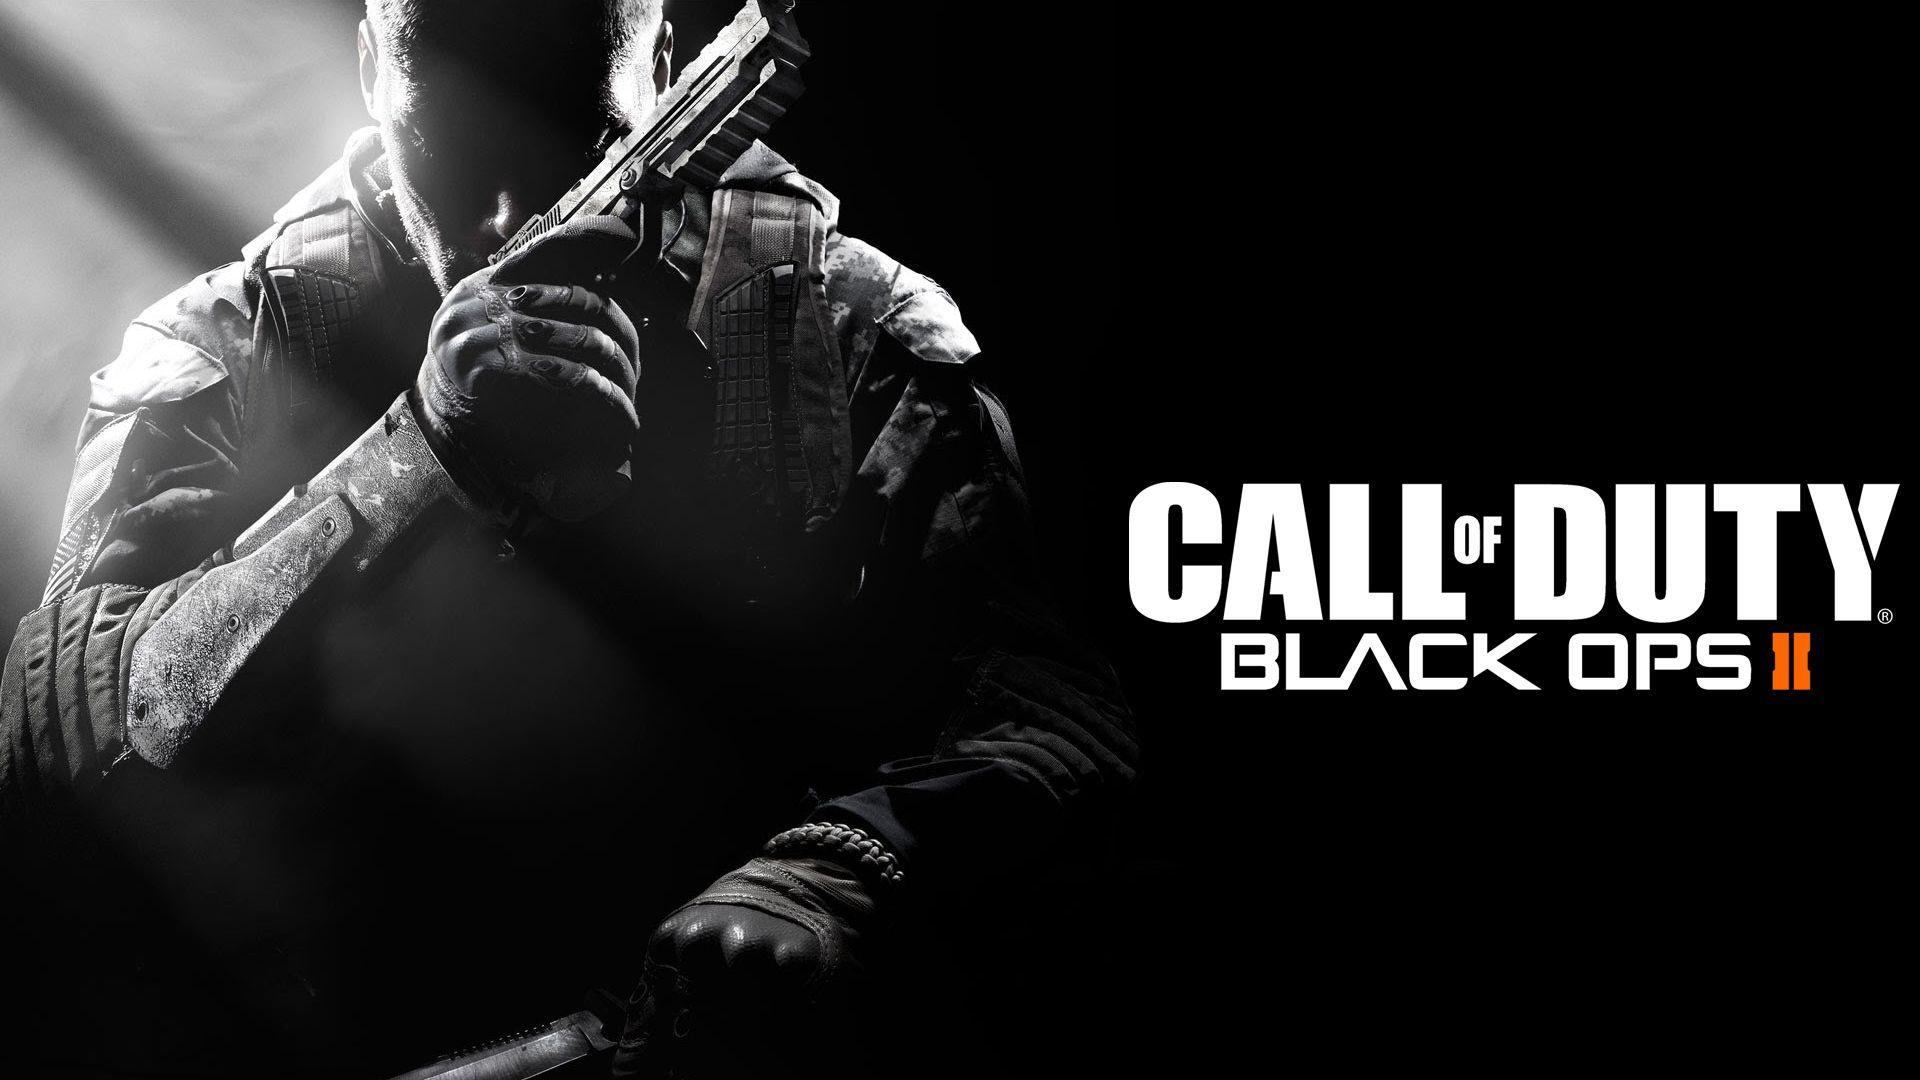 Call Of Duty Black ops II for Android - APK Download